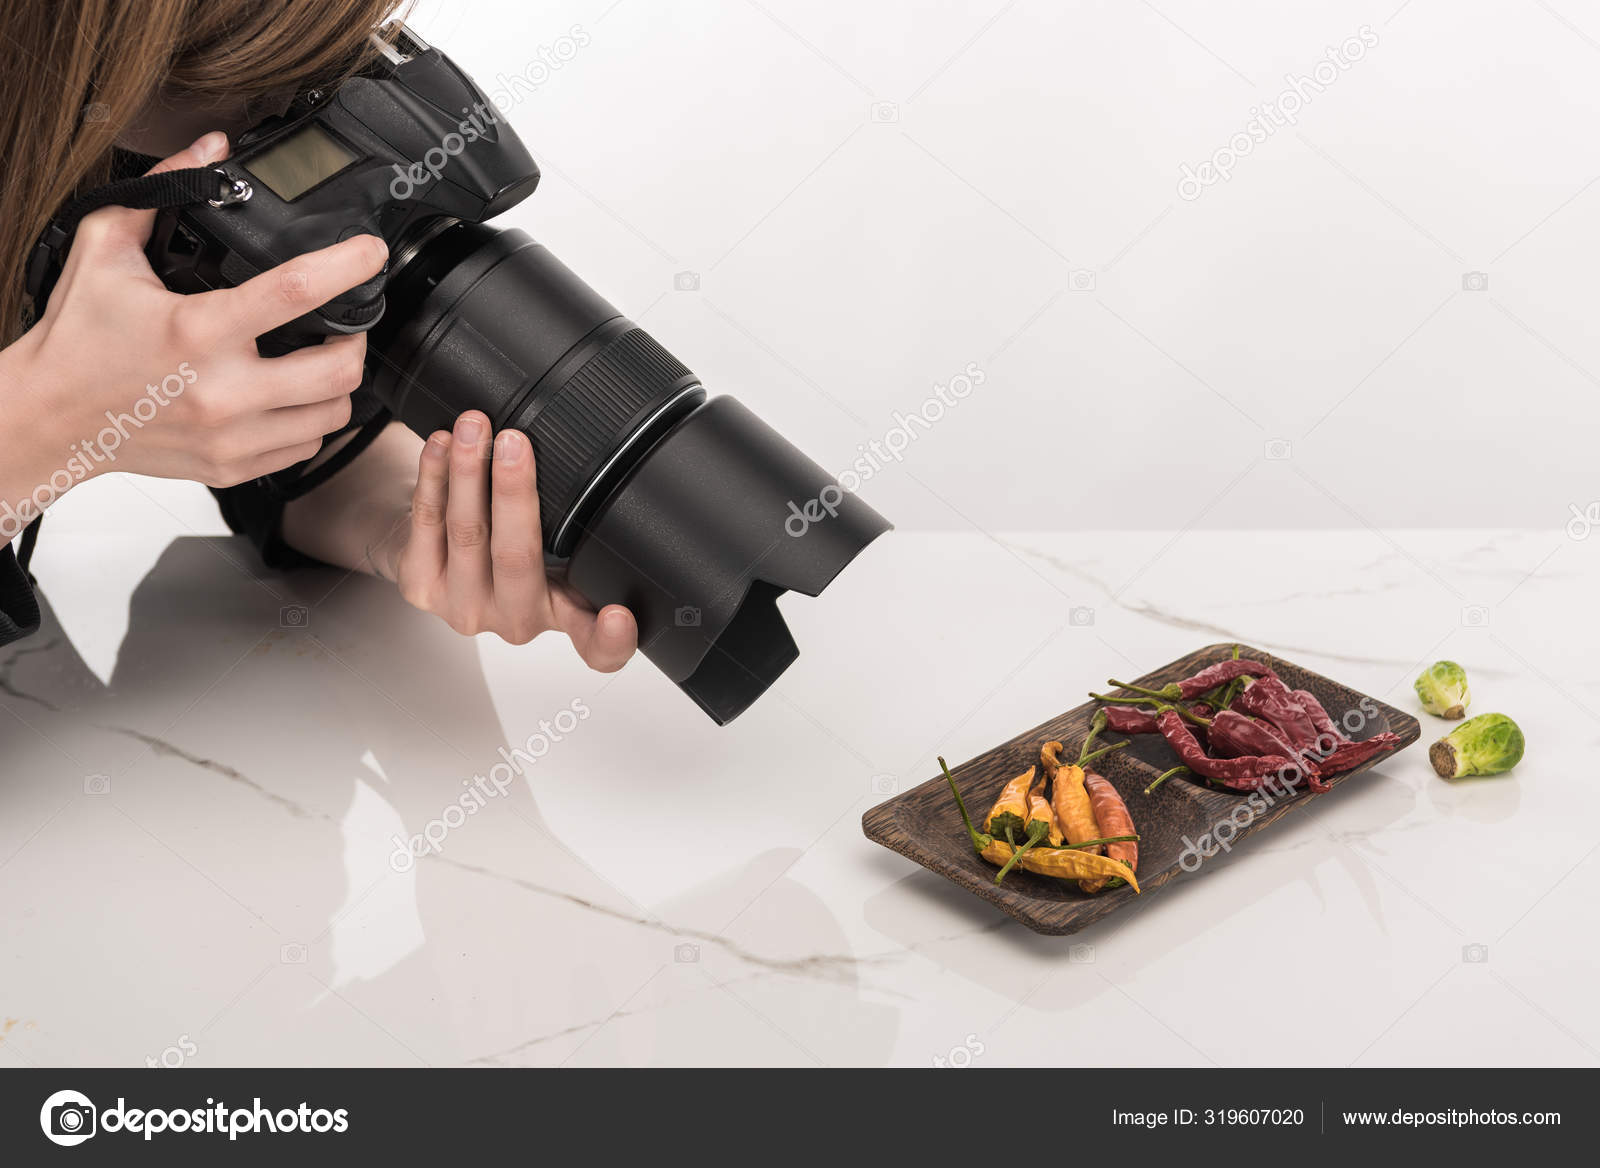 Cropped View Female Photographer Making Food Composition Commercial Photography Taking Stock Photo By C Vadimvasenin 319607020